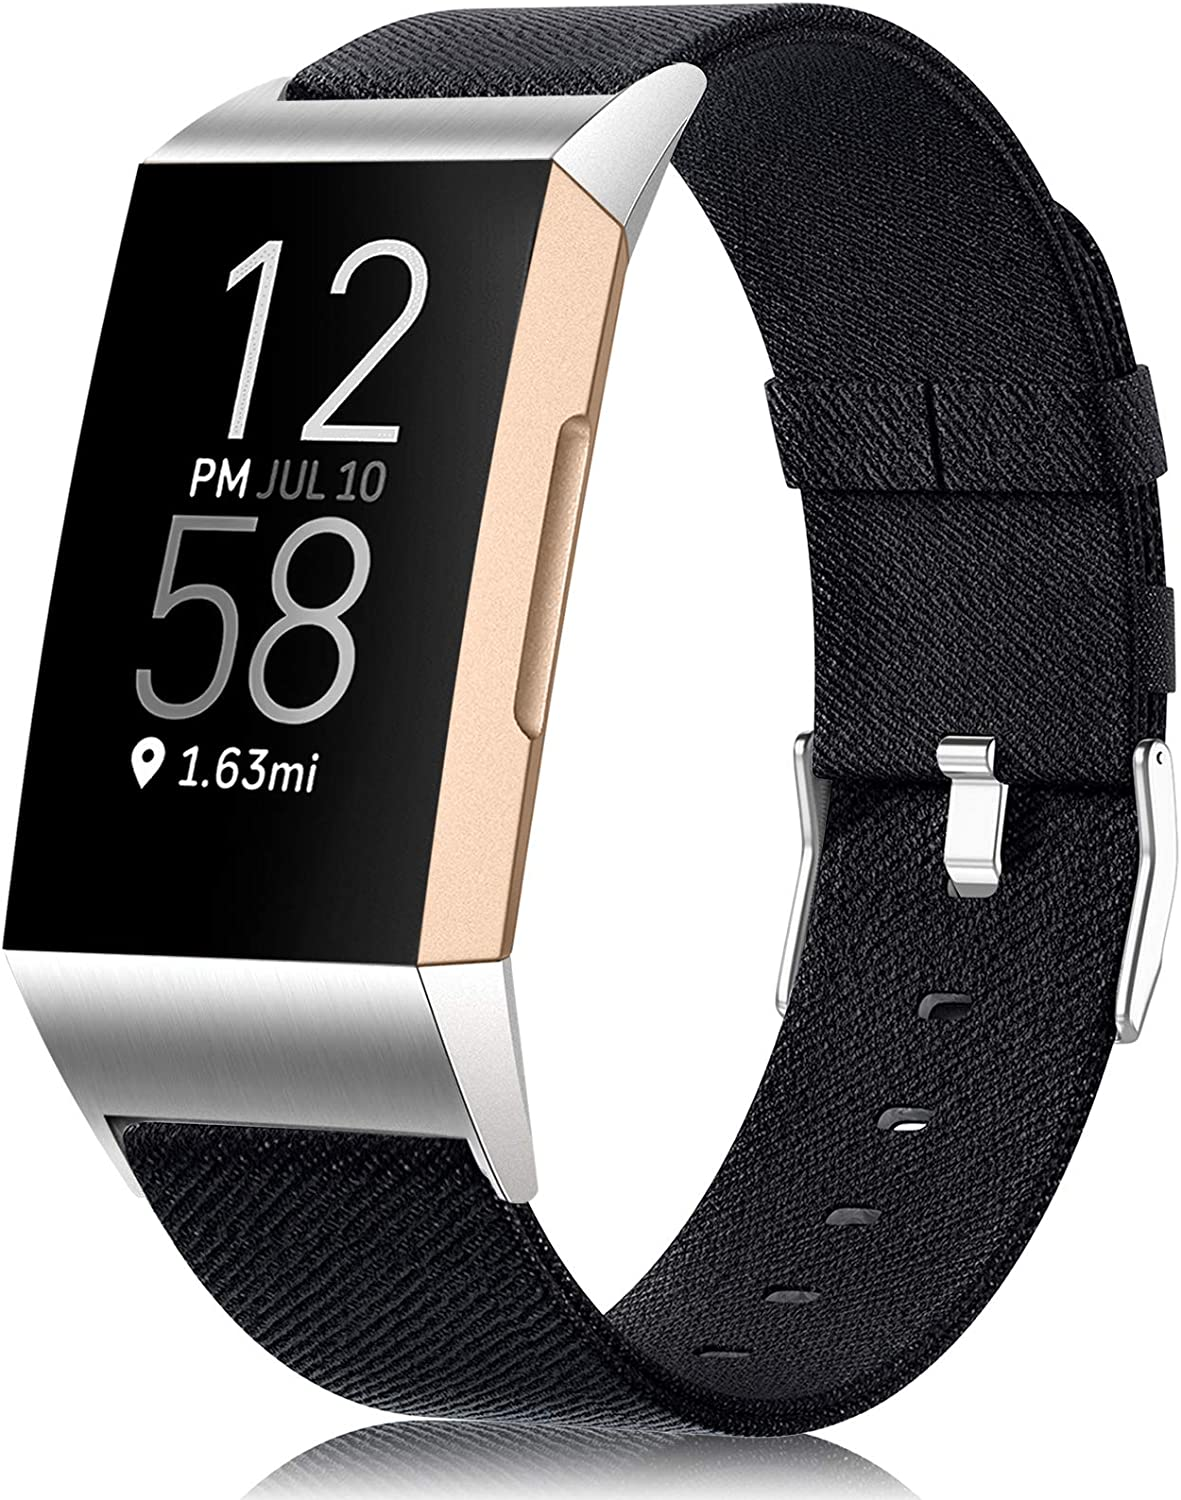 Maledan Compatible with Charge 4 and Charge 3 Bands for Women Men, Breathable Woven Fabric Replacement Accessory Strap for Charge 4/Charge 3/Charge 3 SE, Small, Black